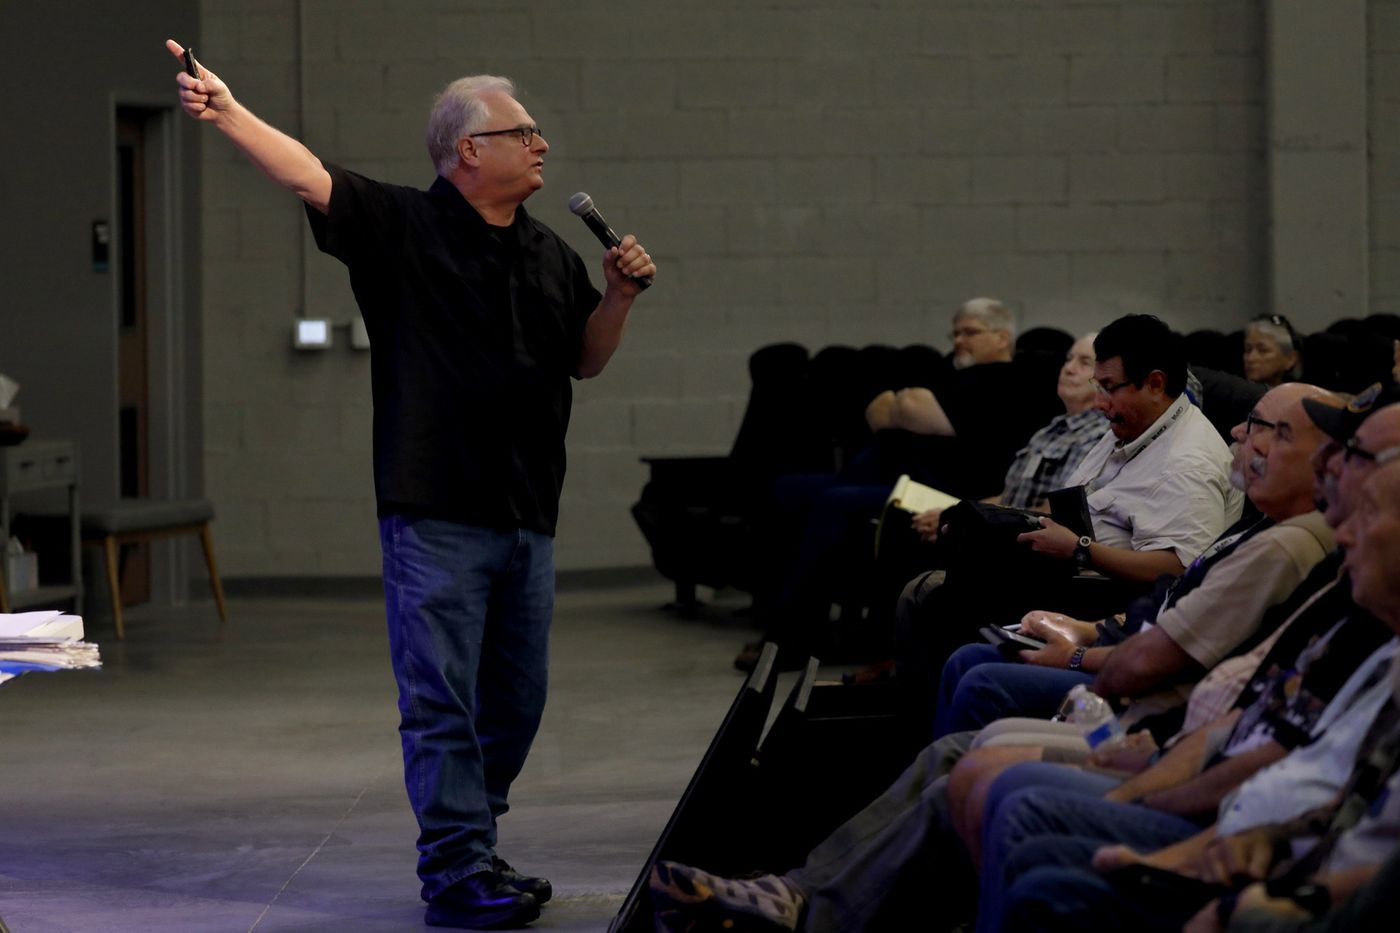 Jimmy Meeks speaking to the crowd at the Huntington Beach, California Sheepdog Seminar ( LA Times) .